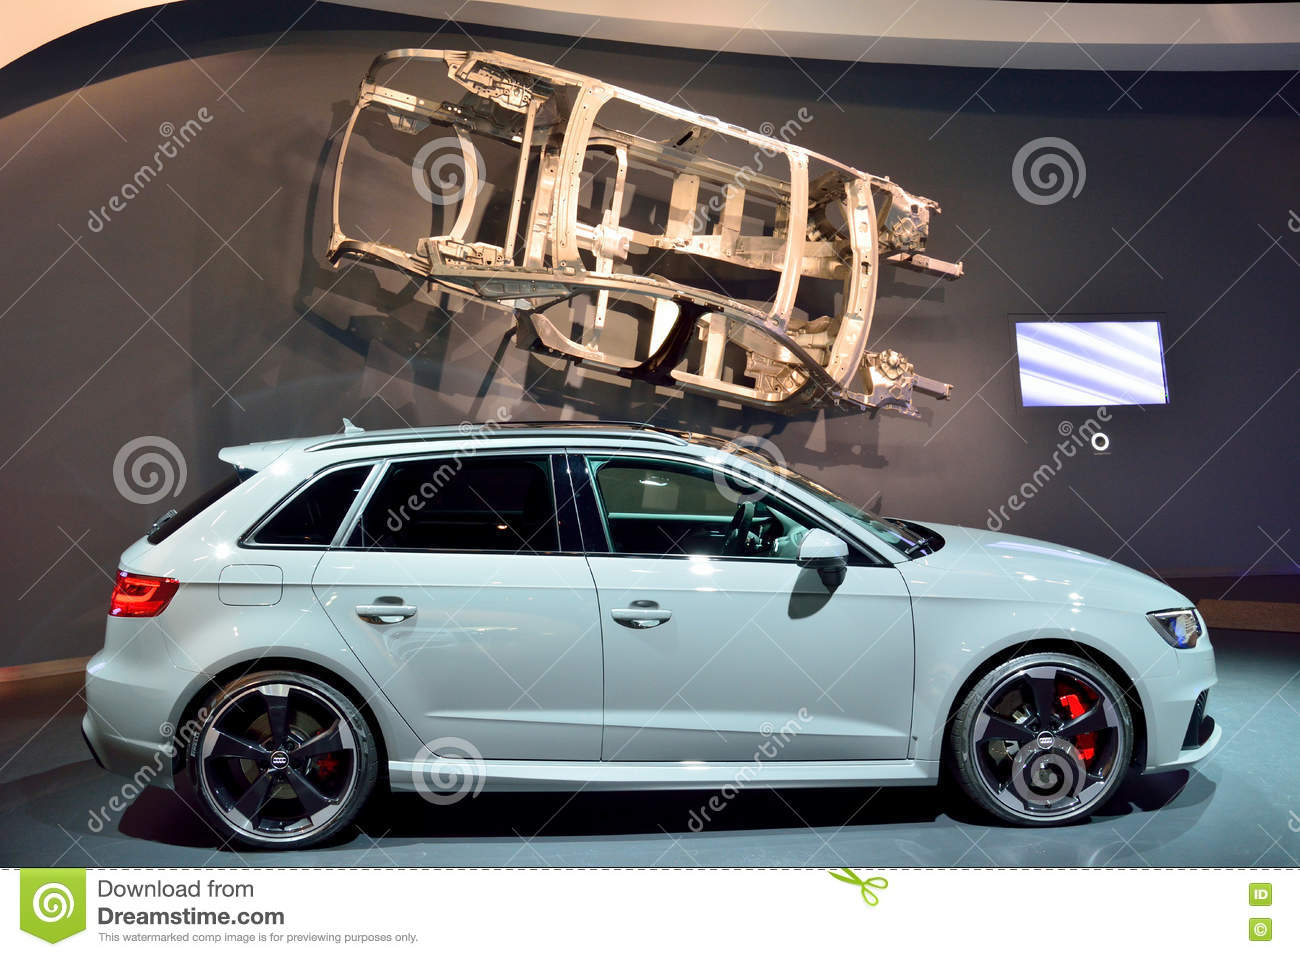 Rs3 Download Audi Rs3 Car Editorial Stock Image Image Of Europe Engine 81489814